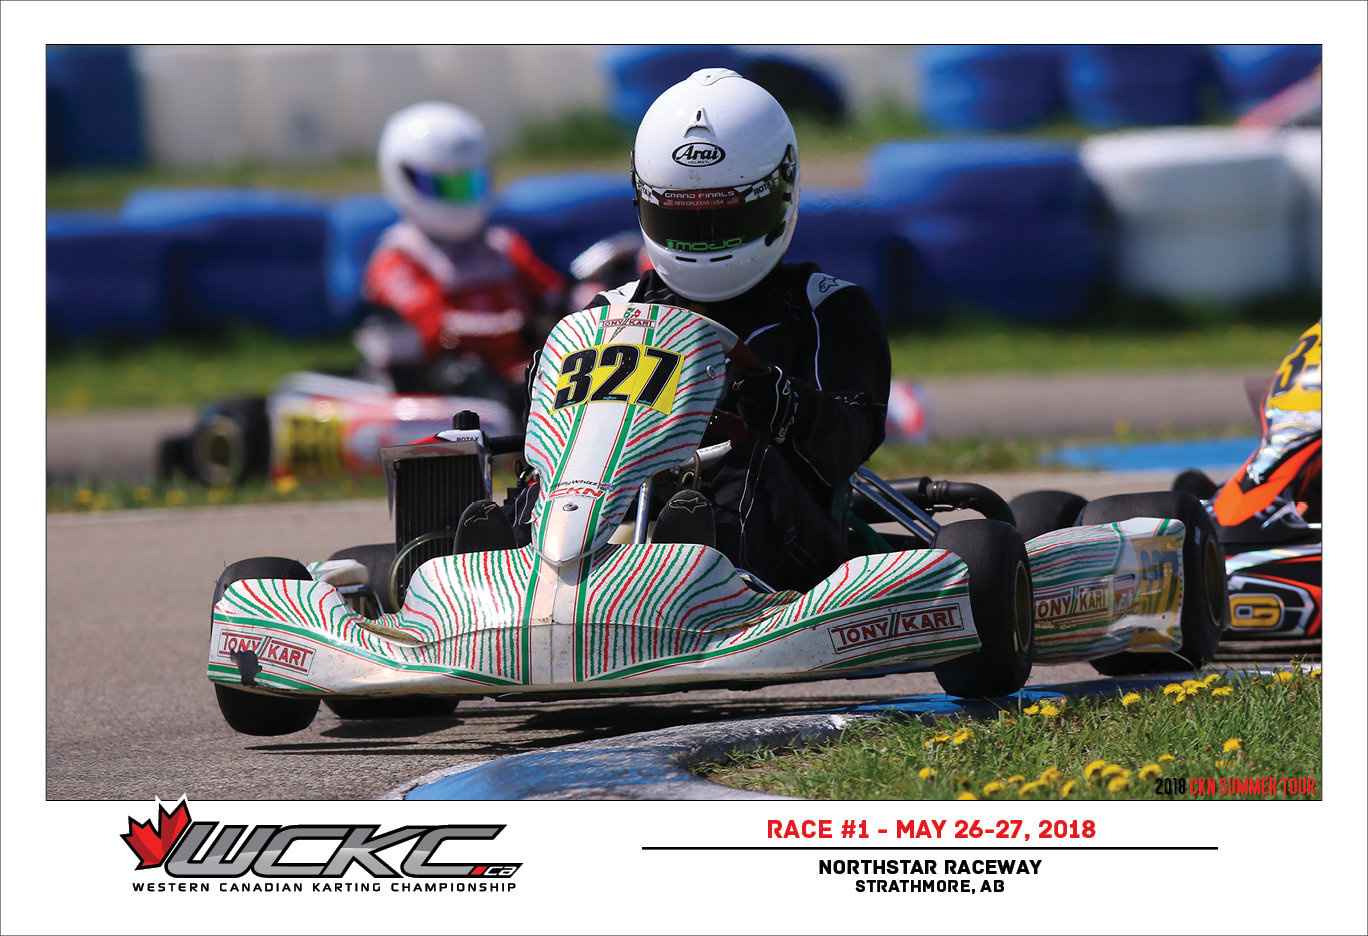 2018 Western Canadian Karting Championship - Official Print + Digitals 00010